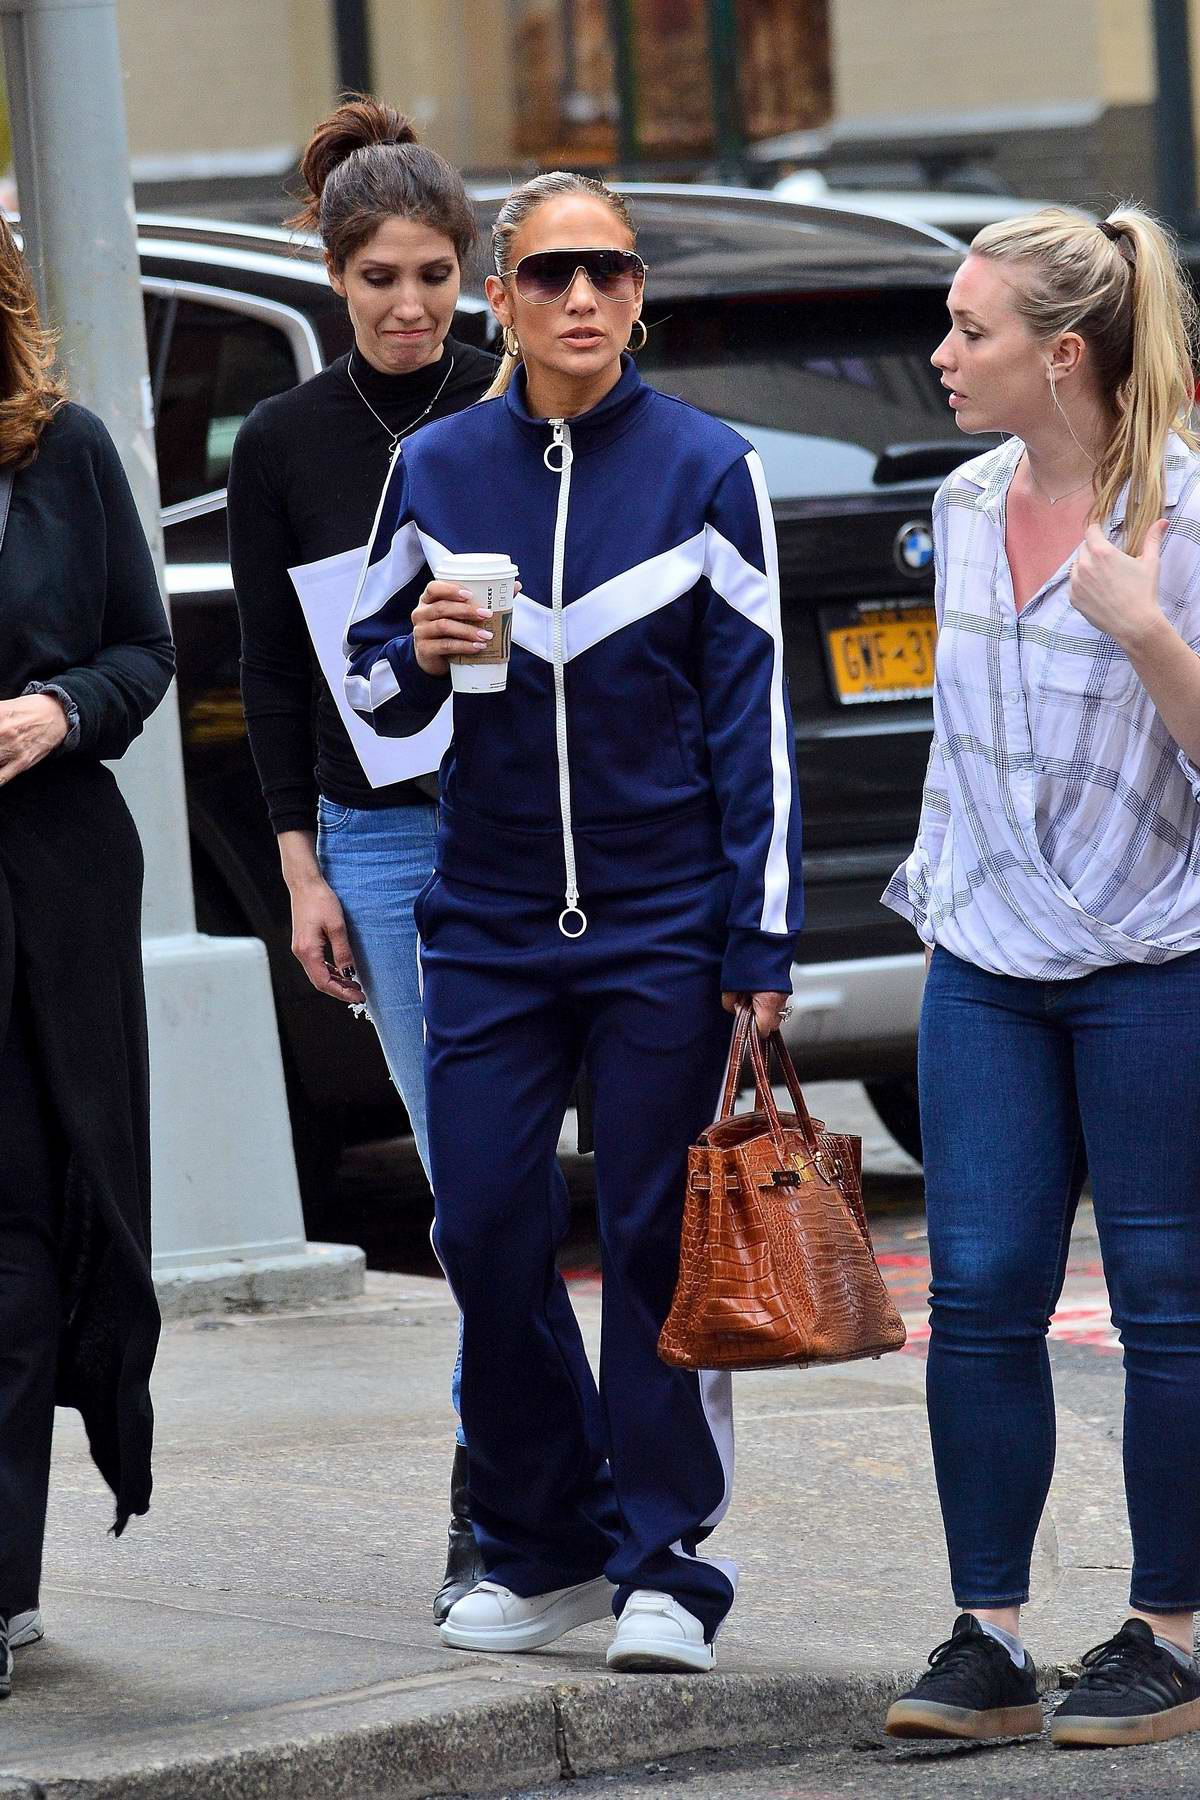 Jennifer Lopez wore blue and white tracksuit as she strolled through in New York City